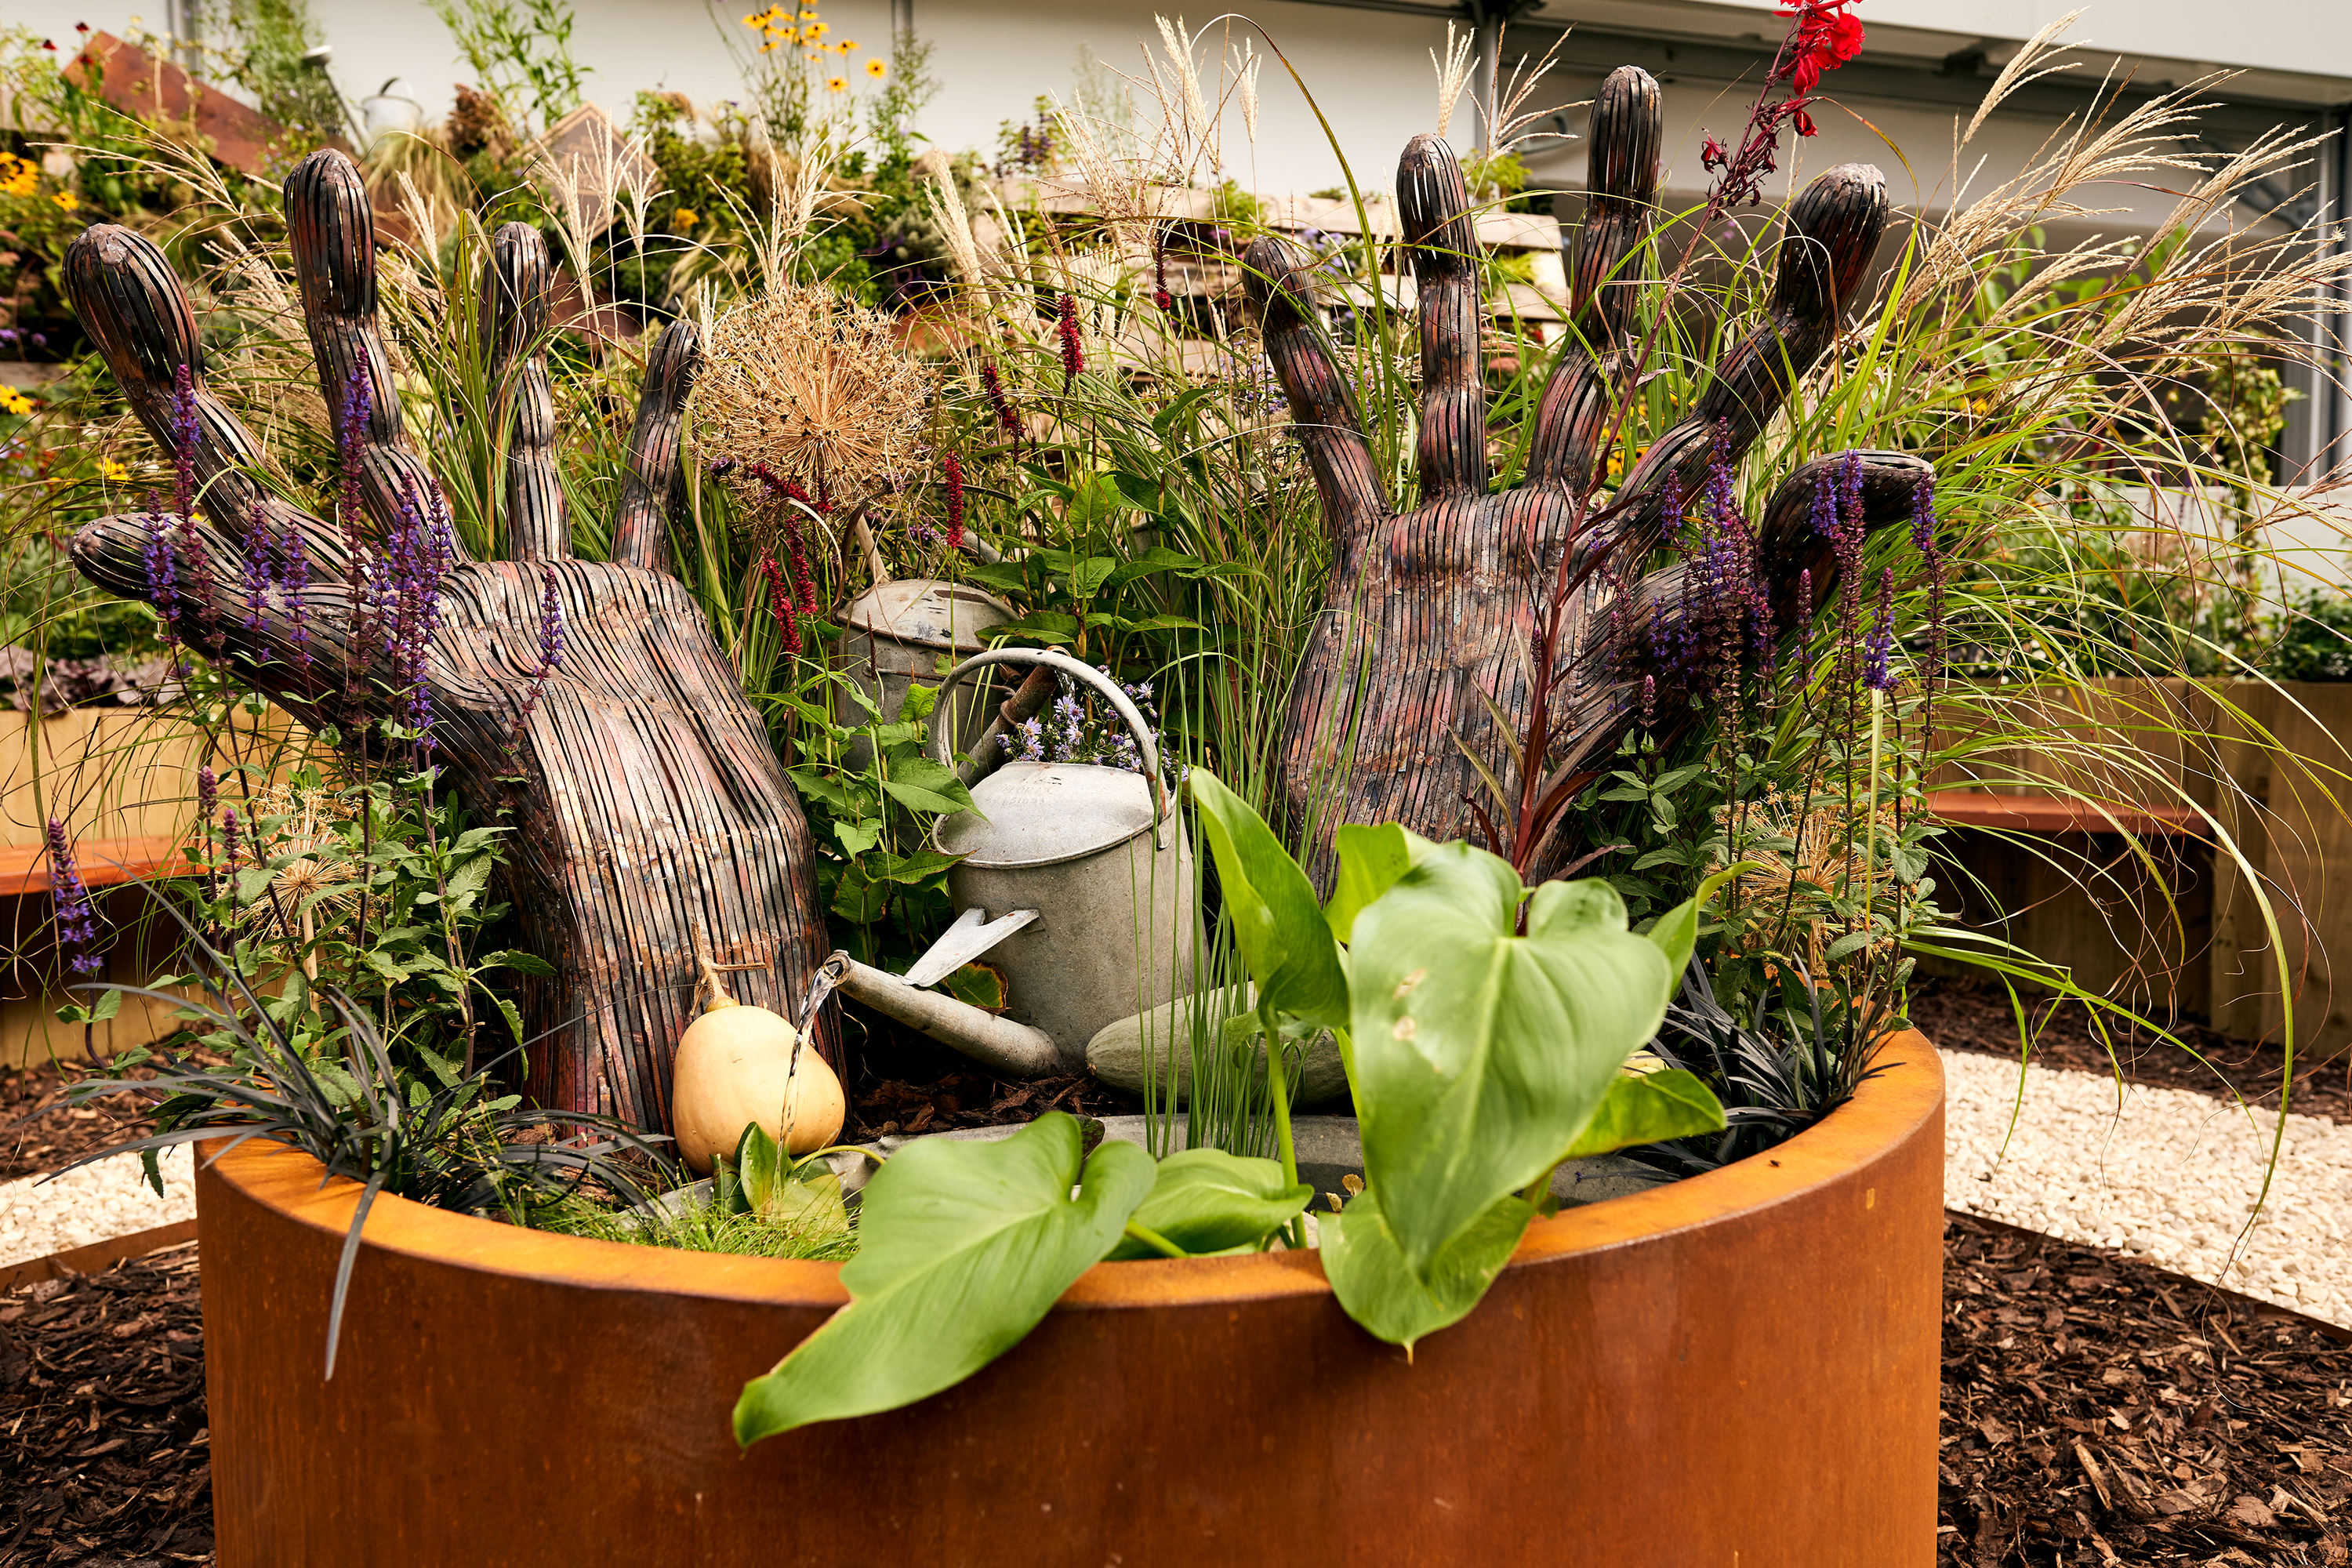 Plant pot with a variety of plants, flowers and hand installation in the middle